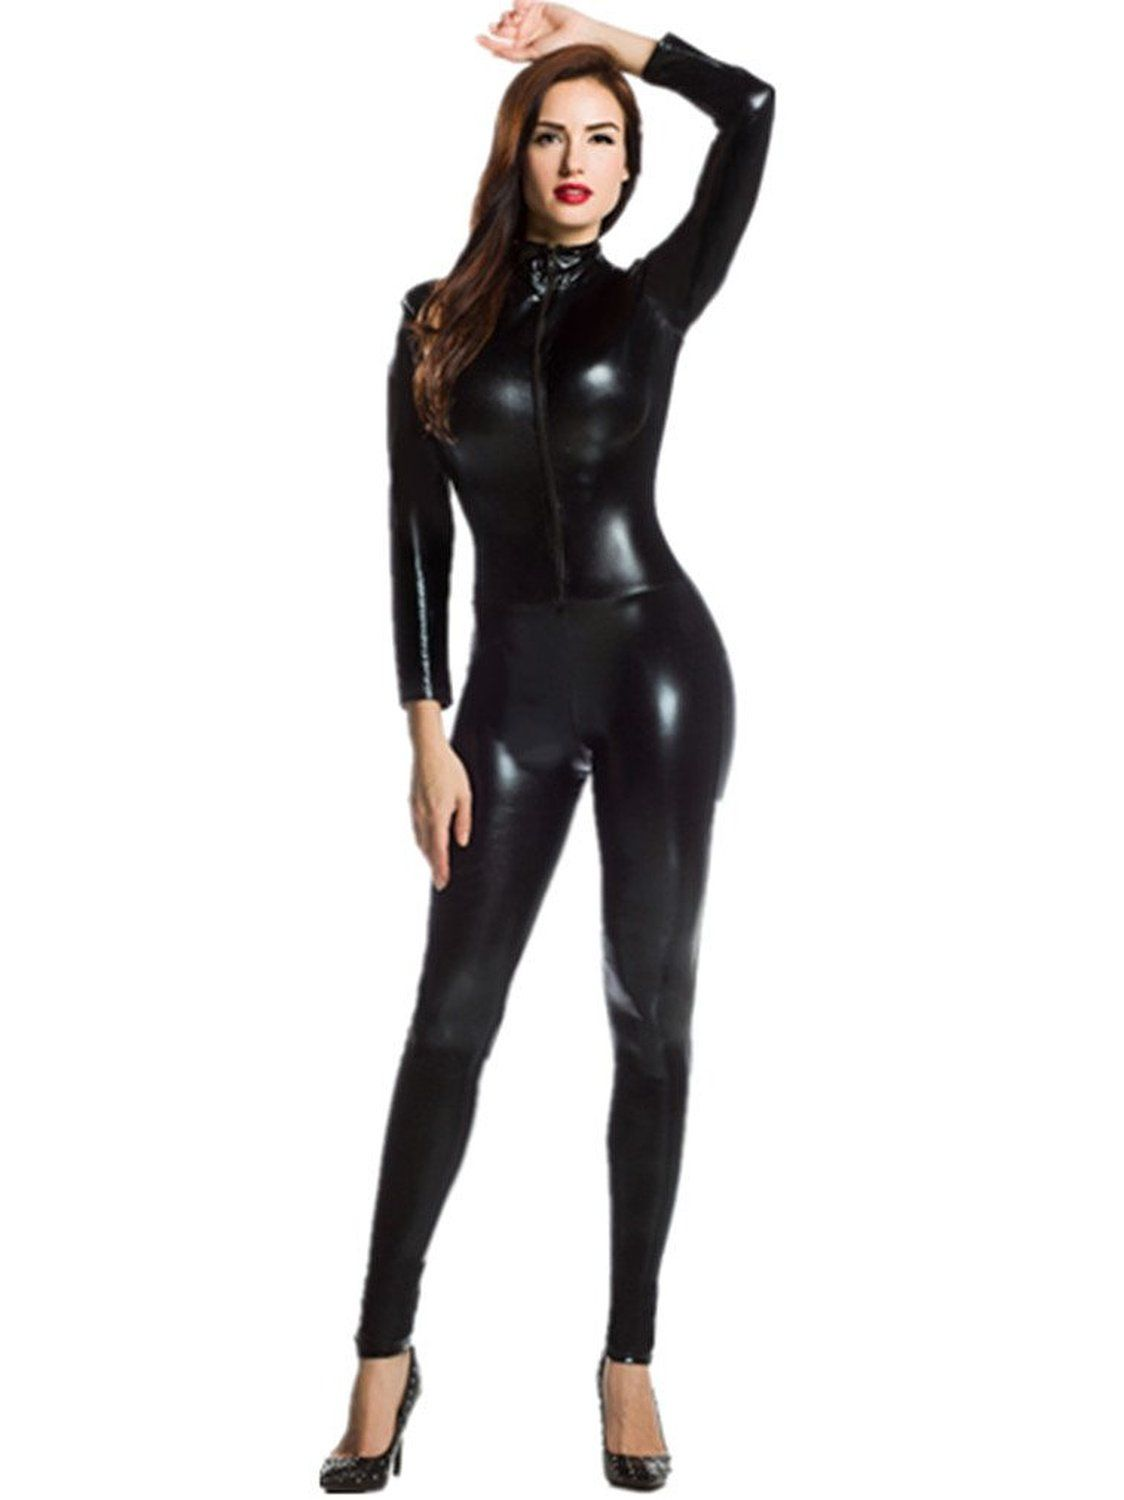 396f496c3 Amazon.com  Amour- Catsuit Women Bodysuit Zip up Clubwear Stripper ...